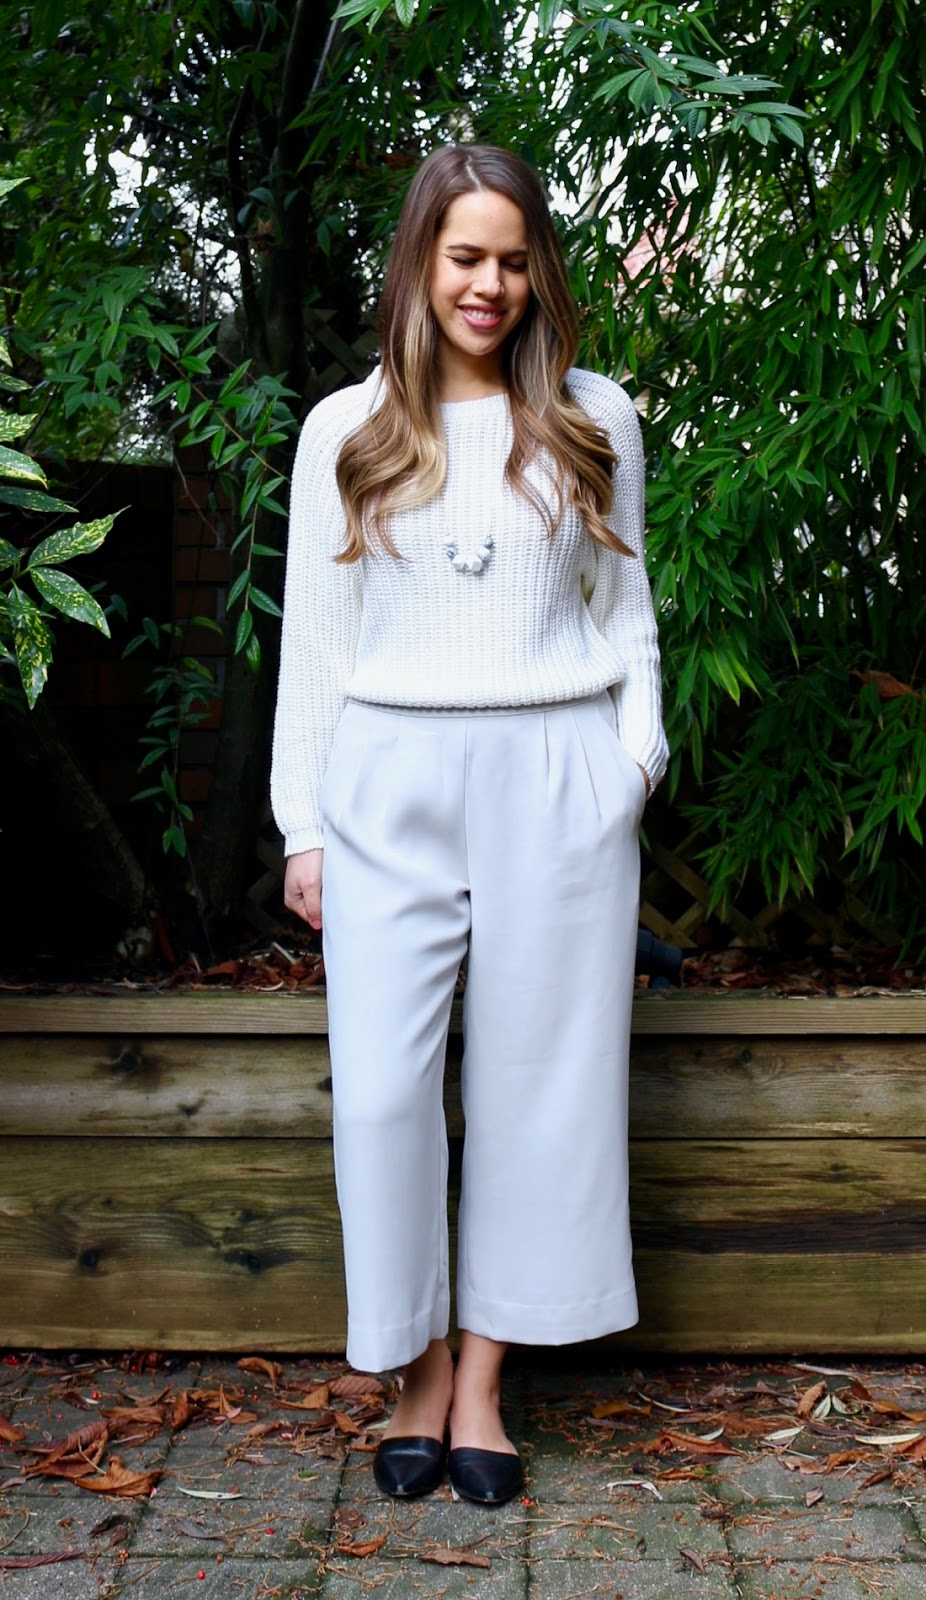 Jules in Flats - Winter White Culotte Outfit (Business Casual Winter Workwear on a Budget)